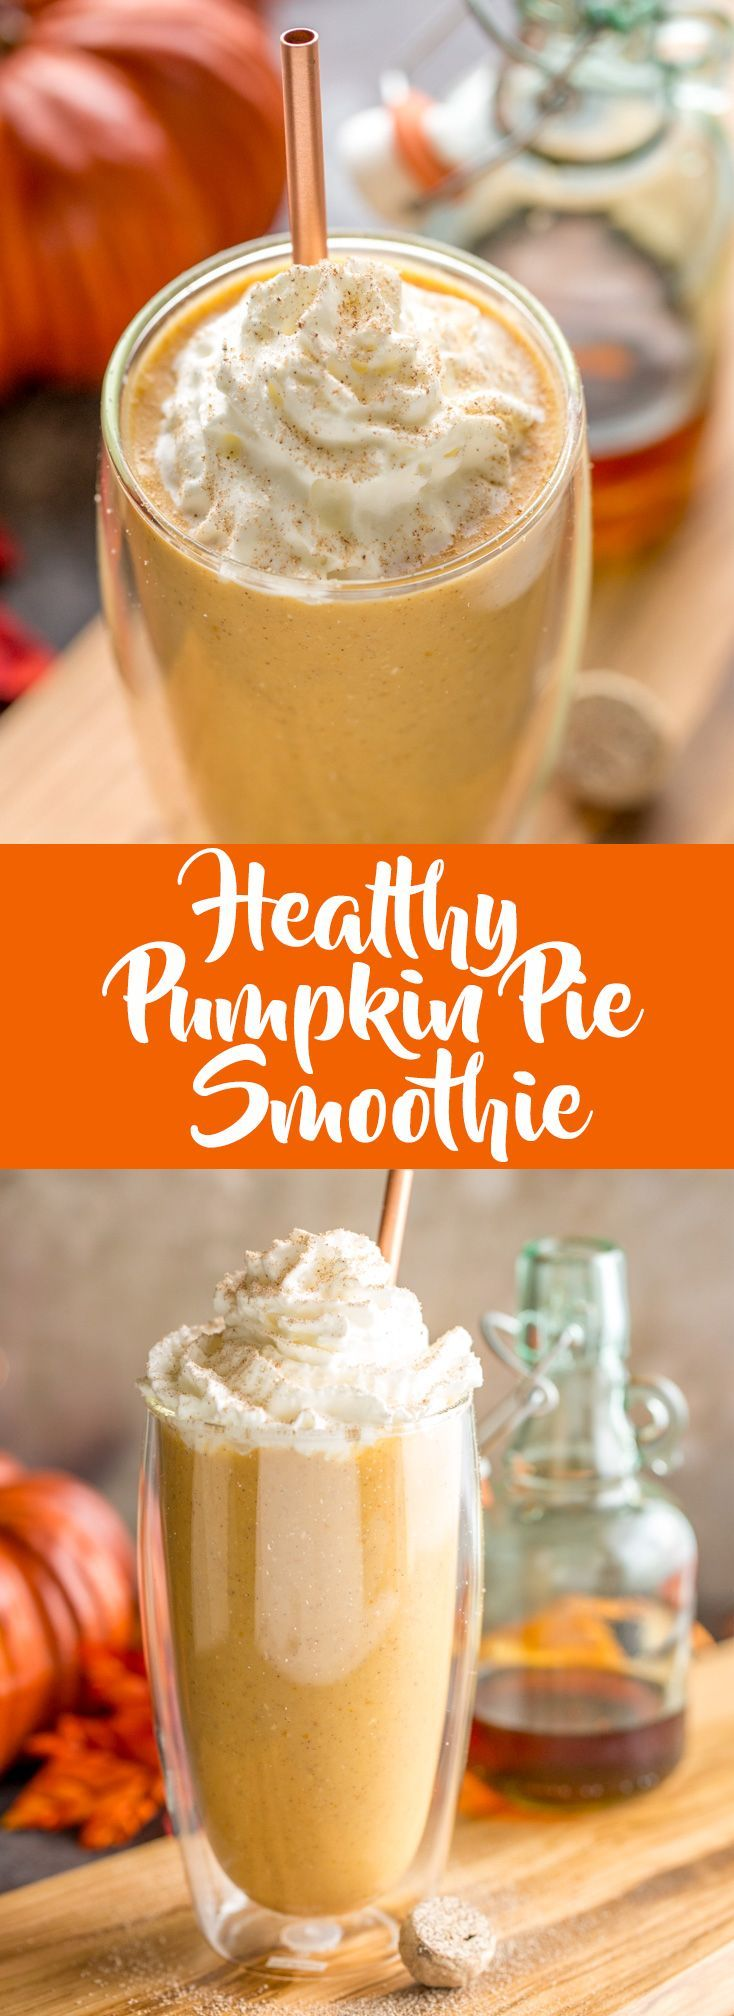 This healthy pumpkin pie smoothie will give you your pumpkin spice fix without all the empty calories.